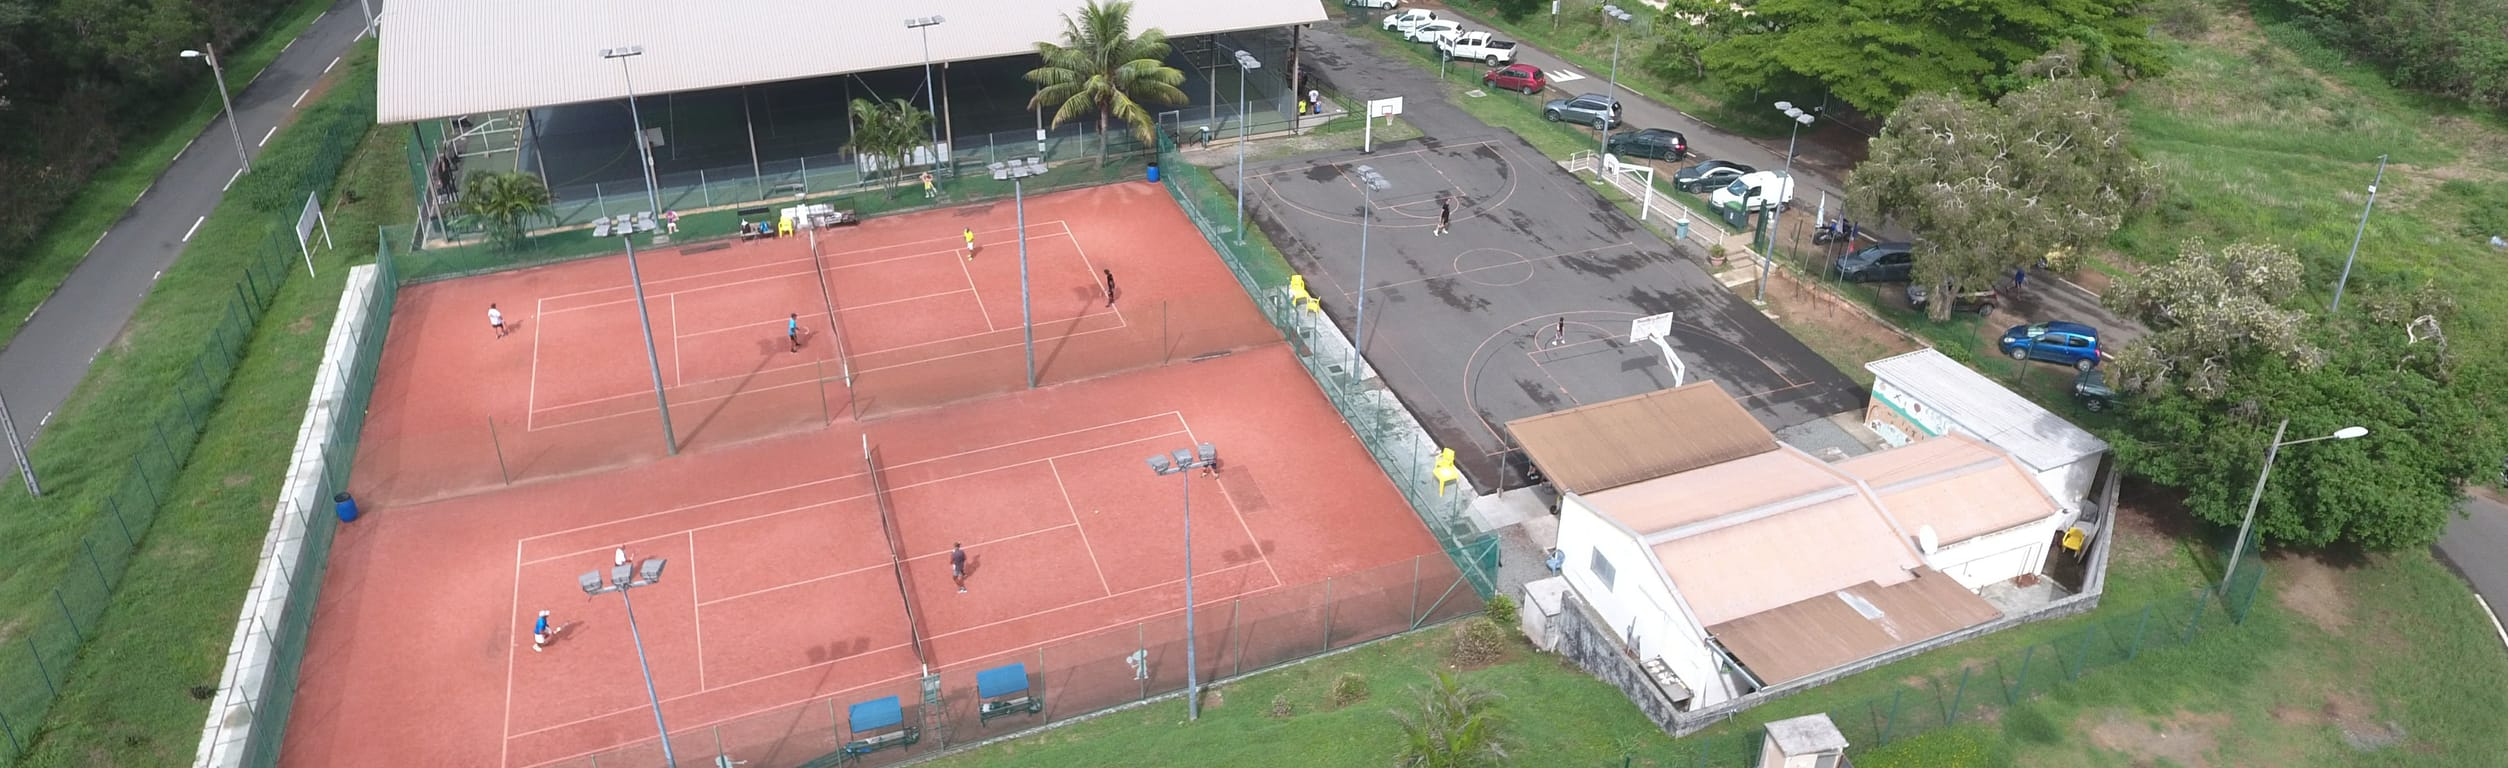 AS 6eme Section Tennis